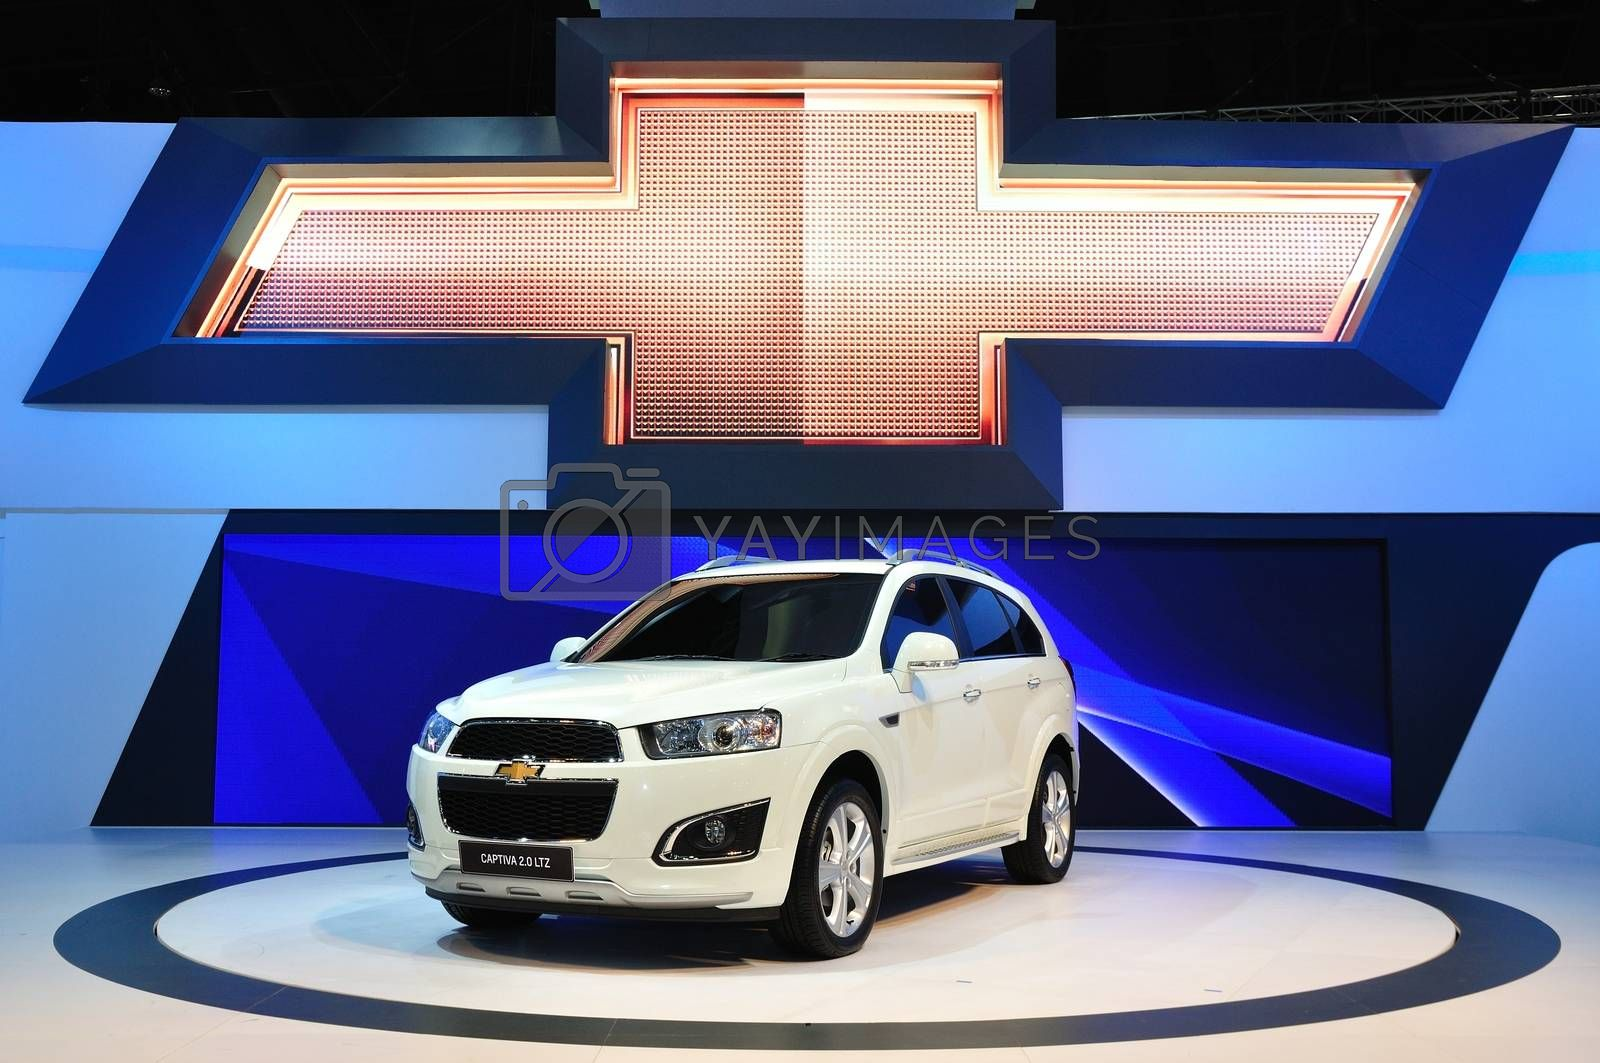 NONTHABURI - March 25: New Chevrolet Captive 2.0 Litre on displa by thampapon